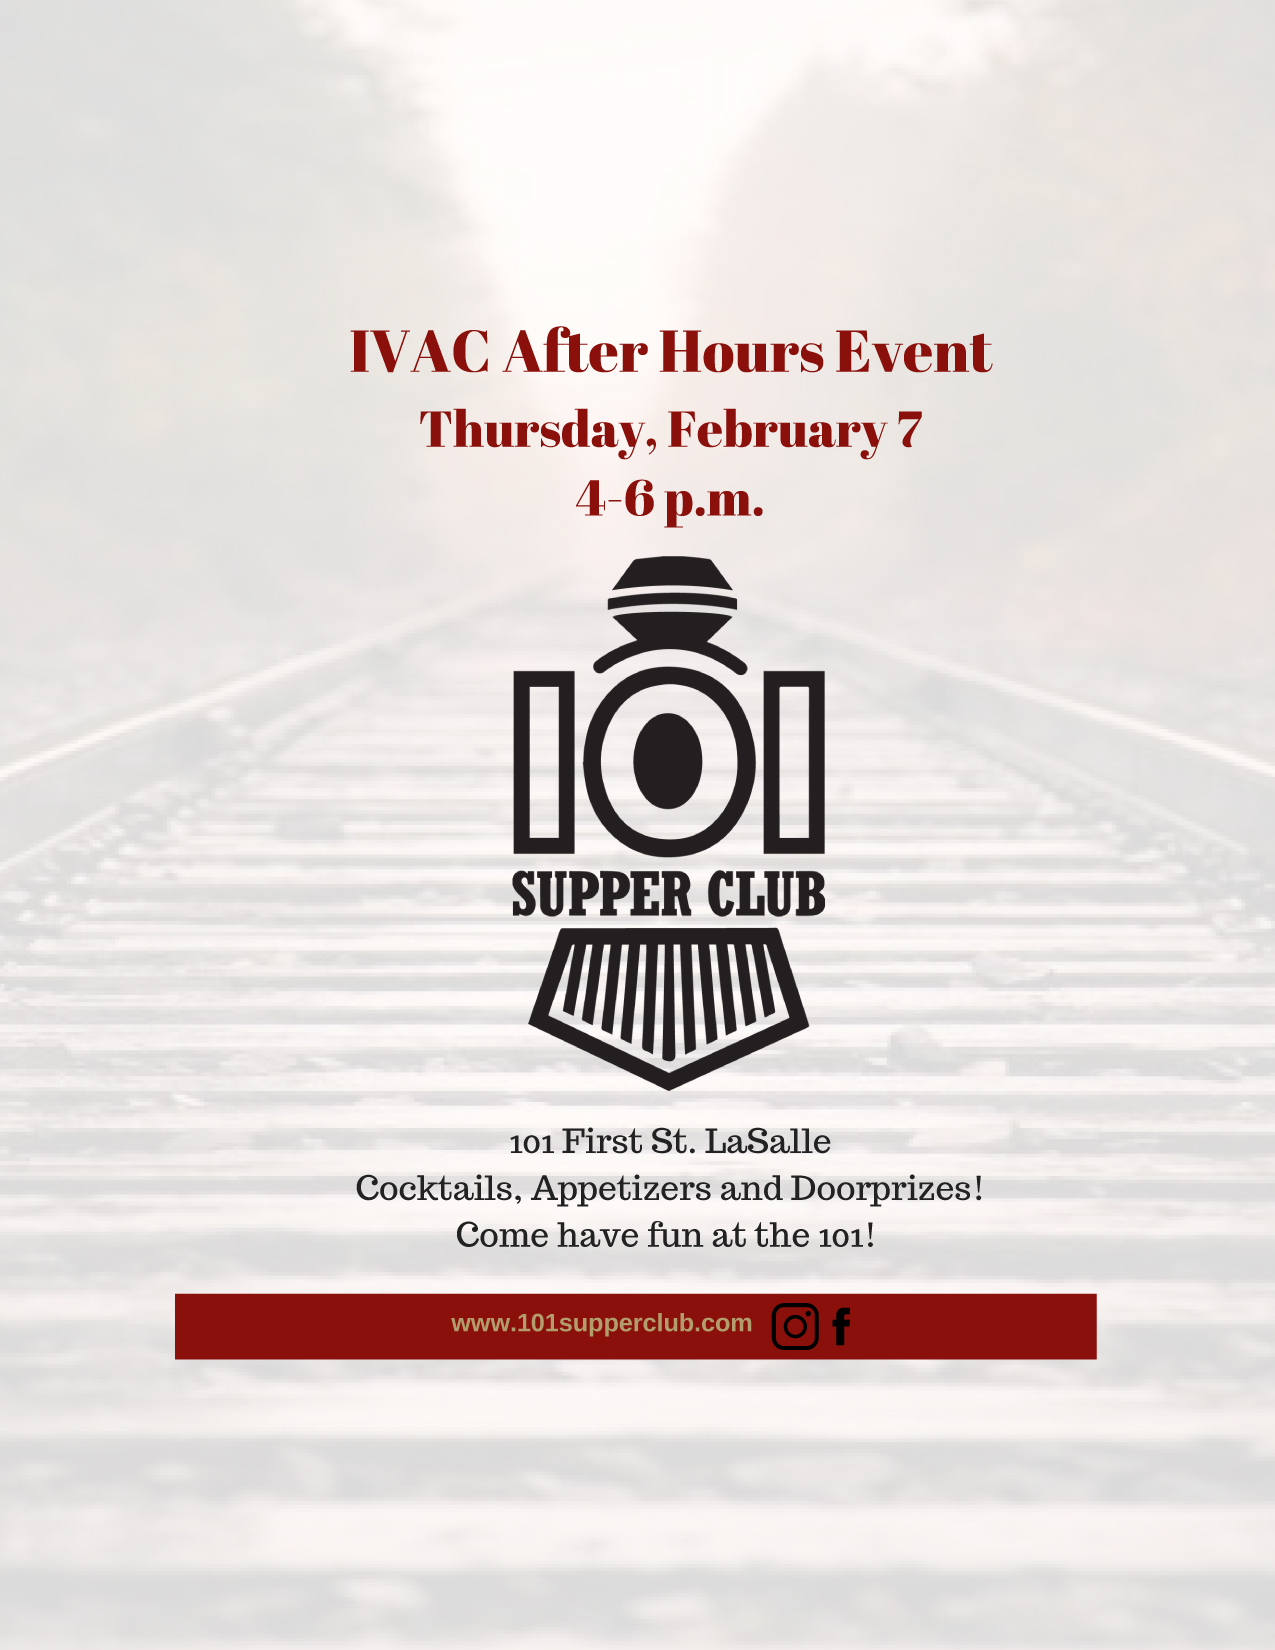 The 101 Supper Club after hour event